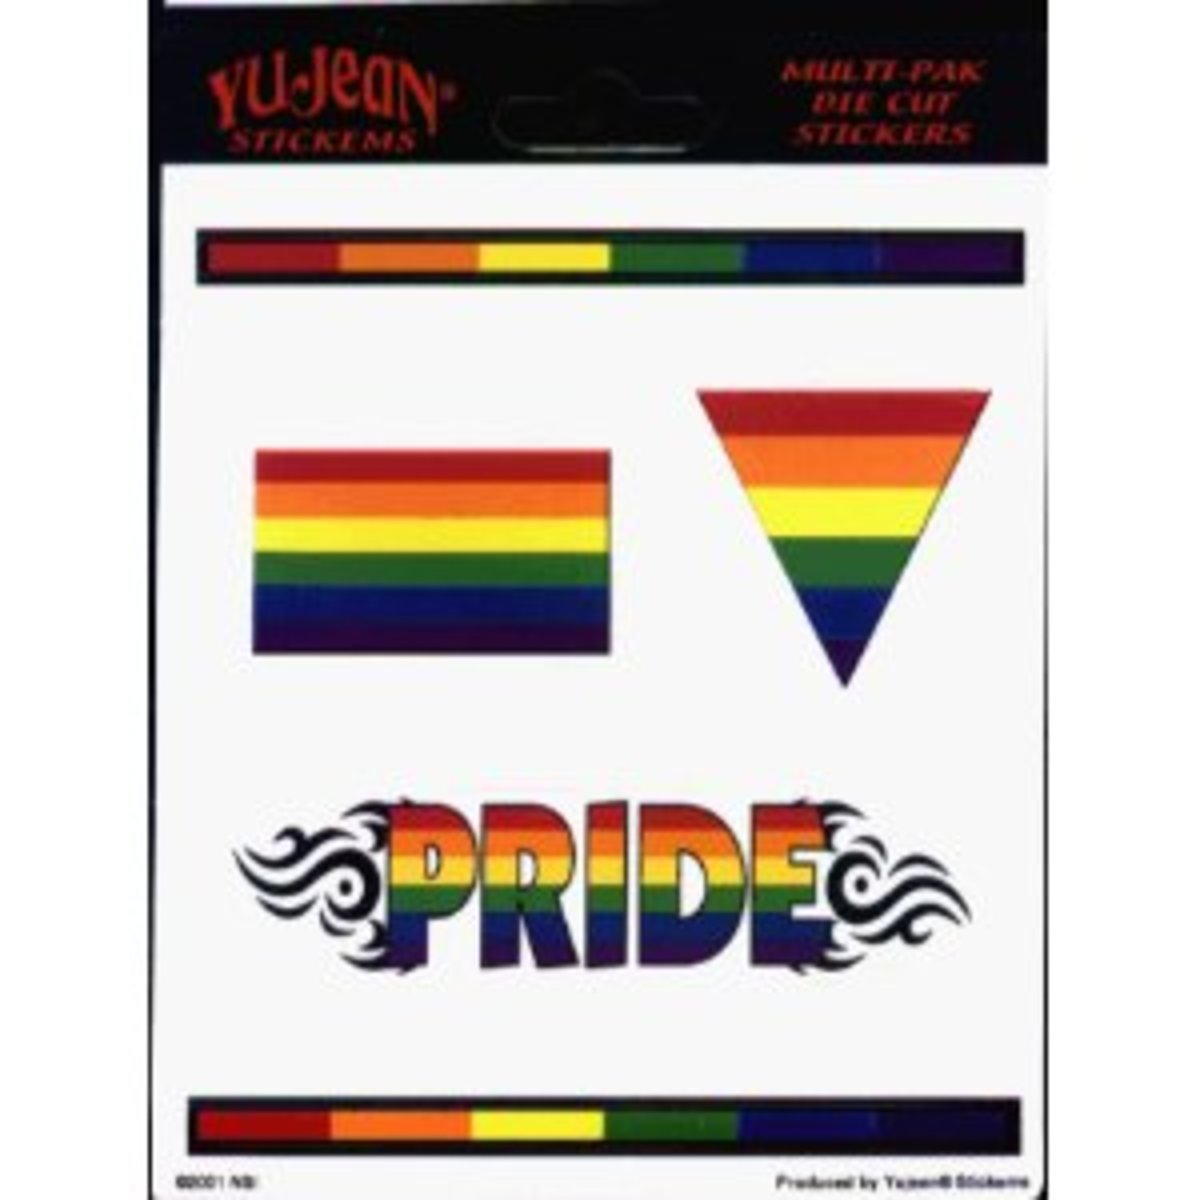 lgbt-pride-sticker-sets-pride-stickers-and-magnetic-signs-to-show-your-gay-pride